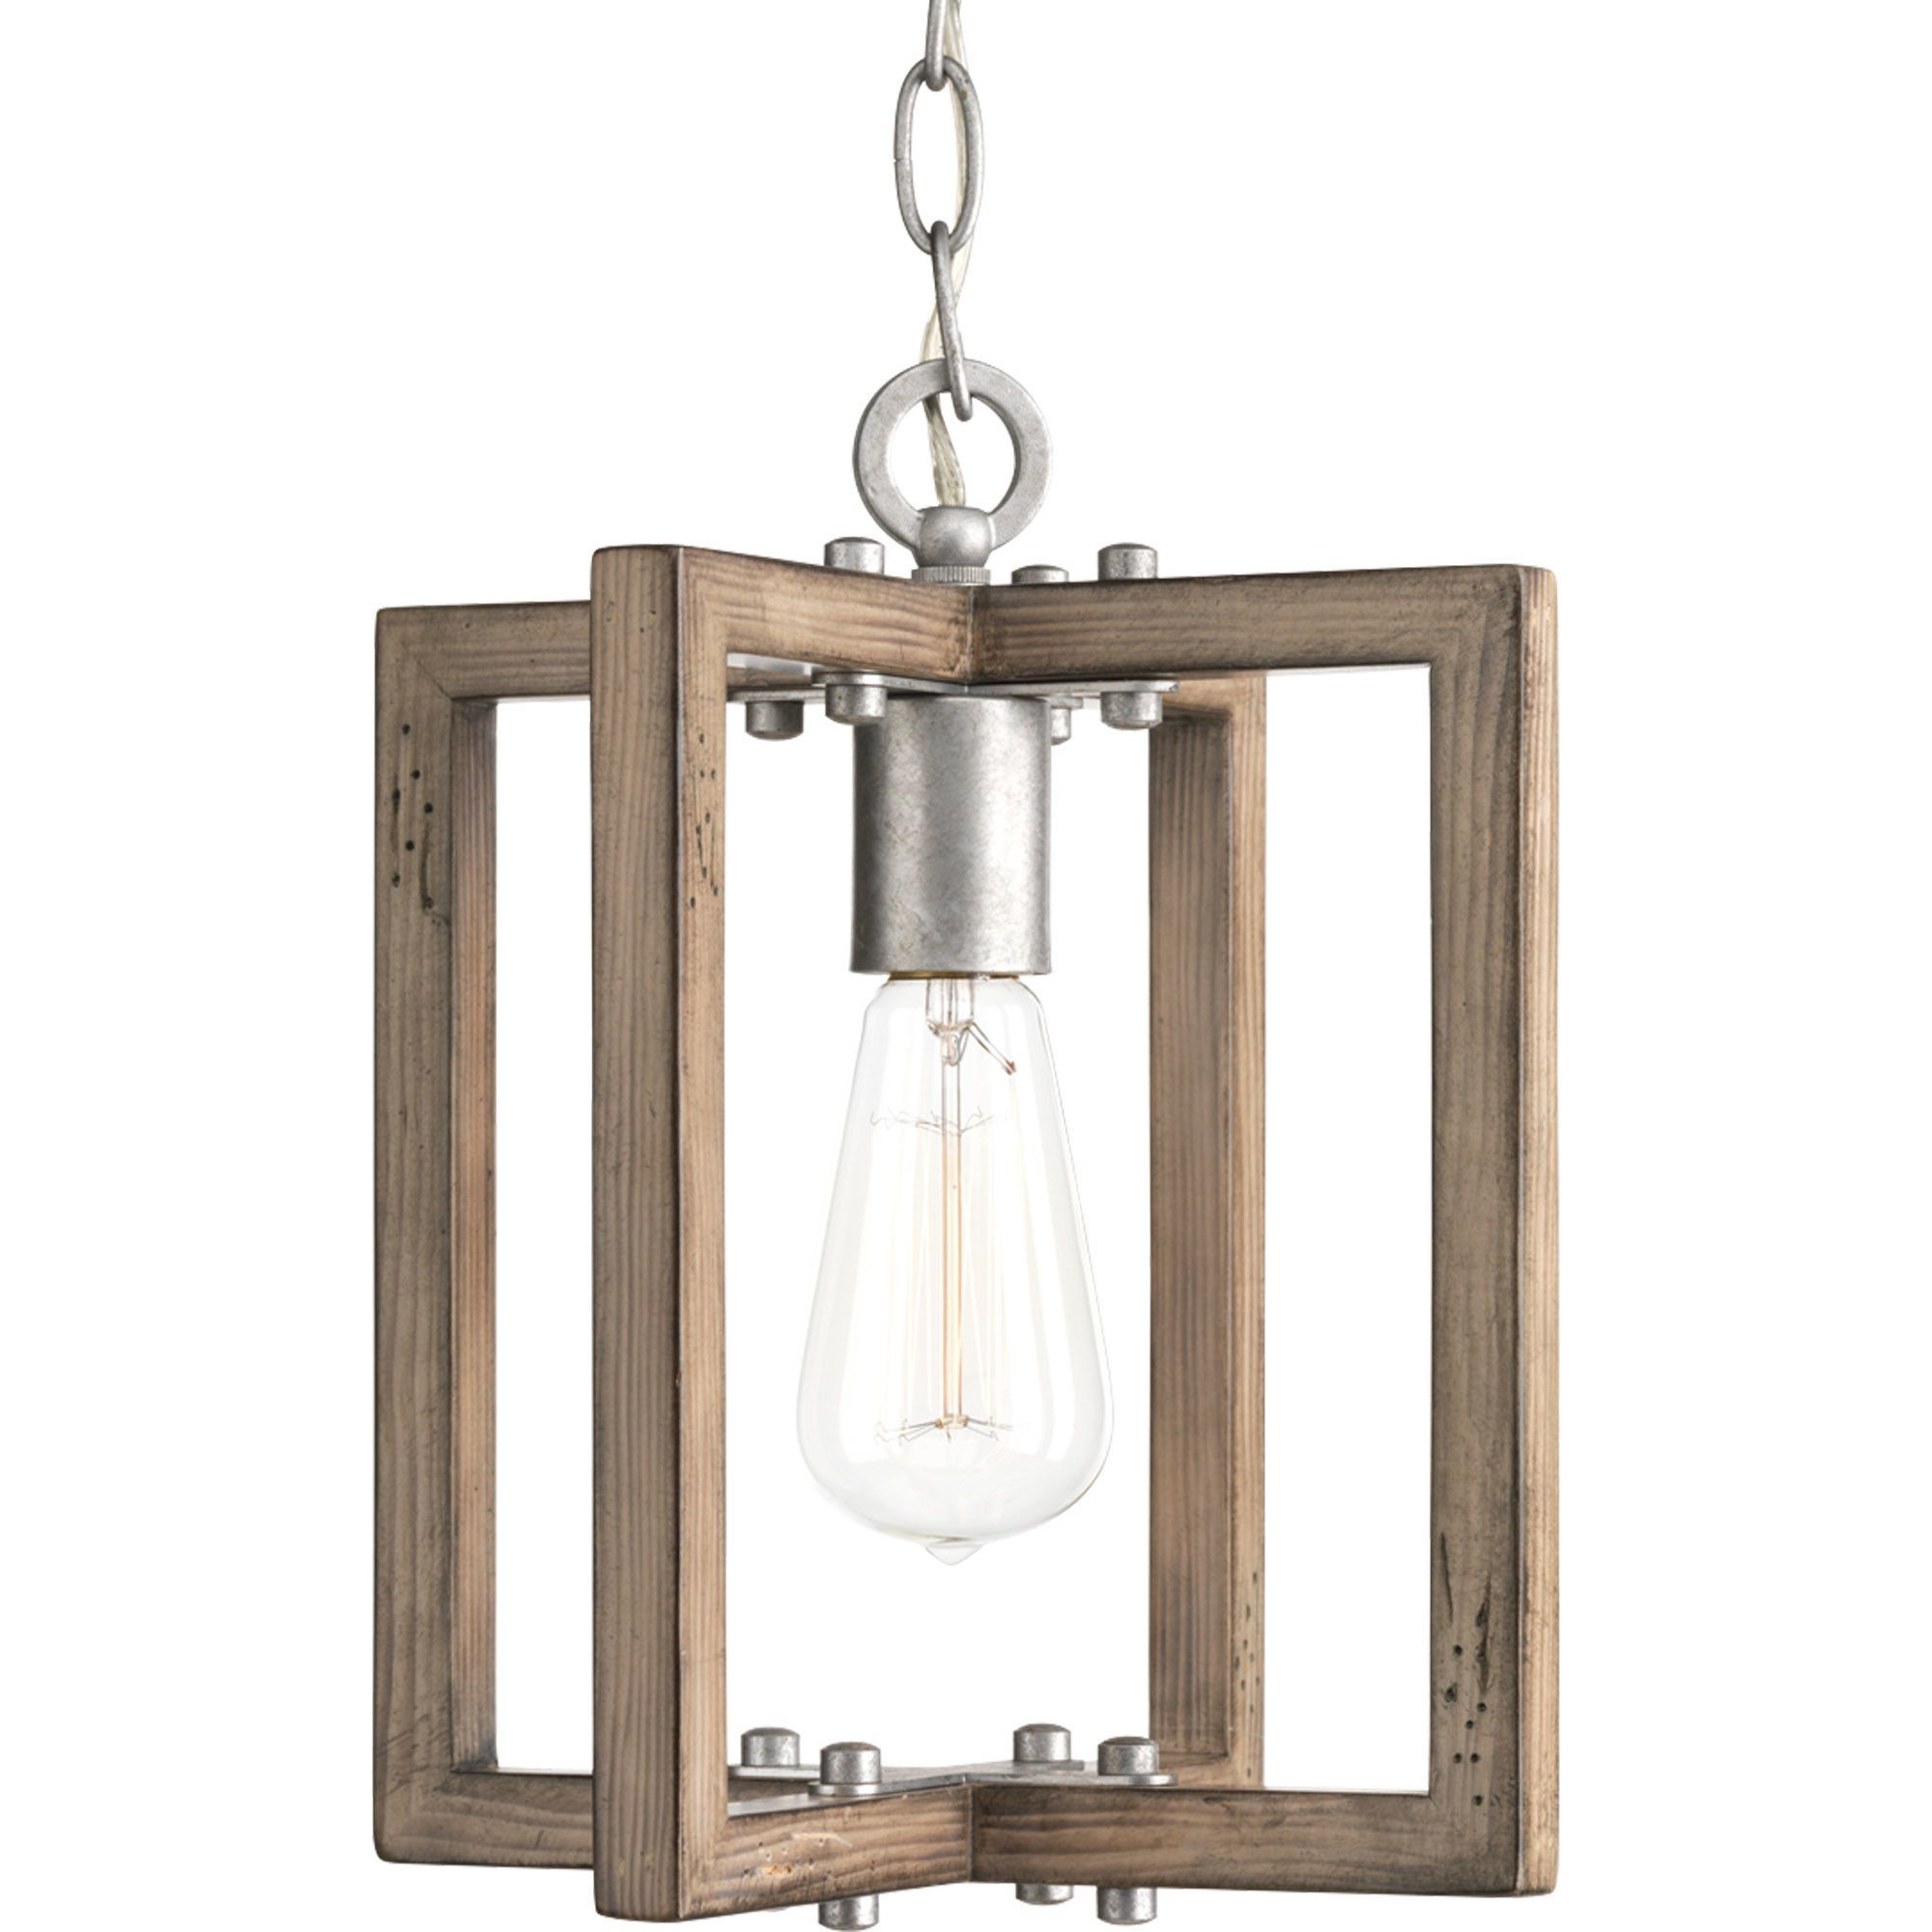 Turnbury light mini pendant products pinterest mini pendant